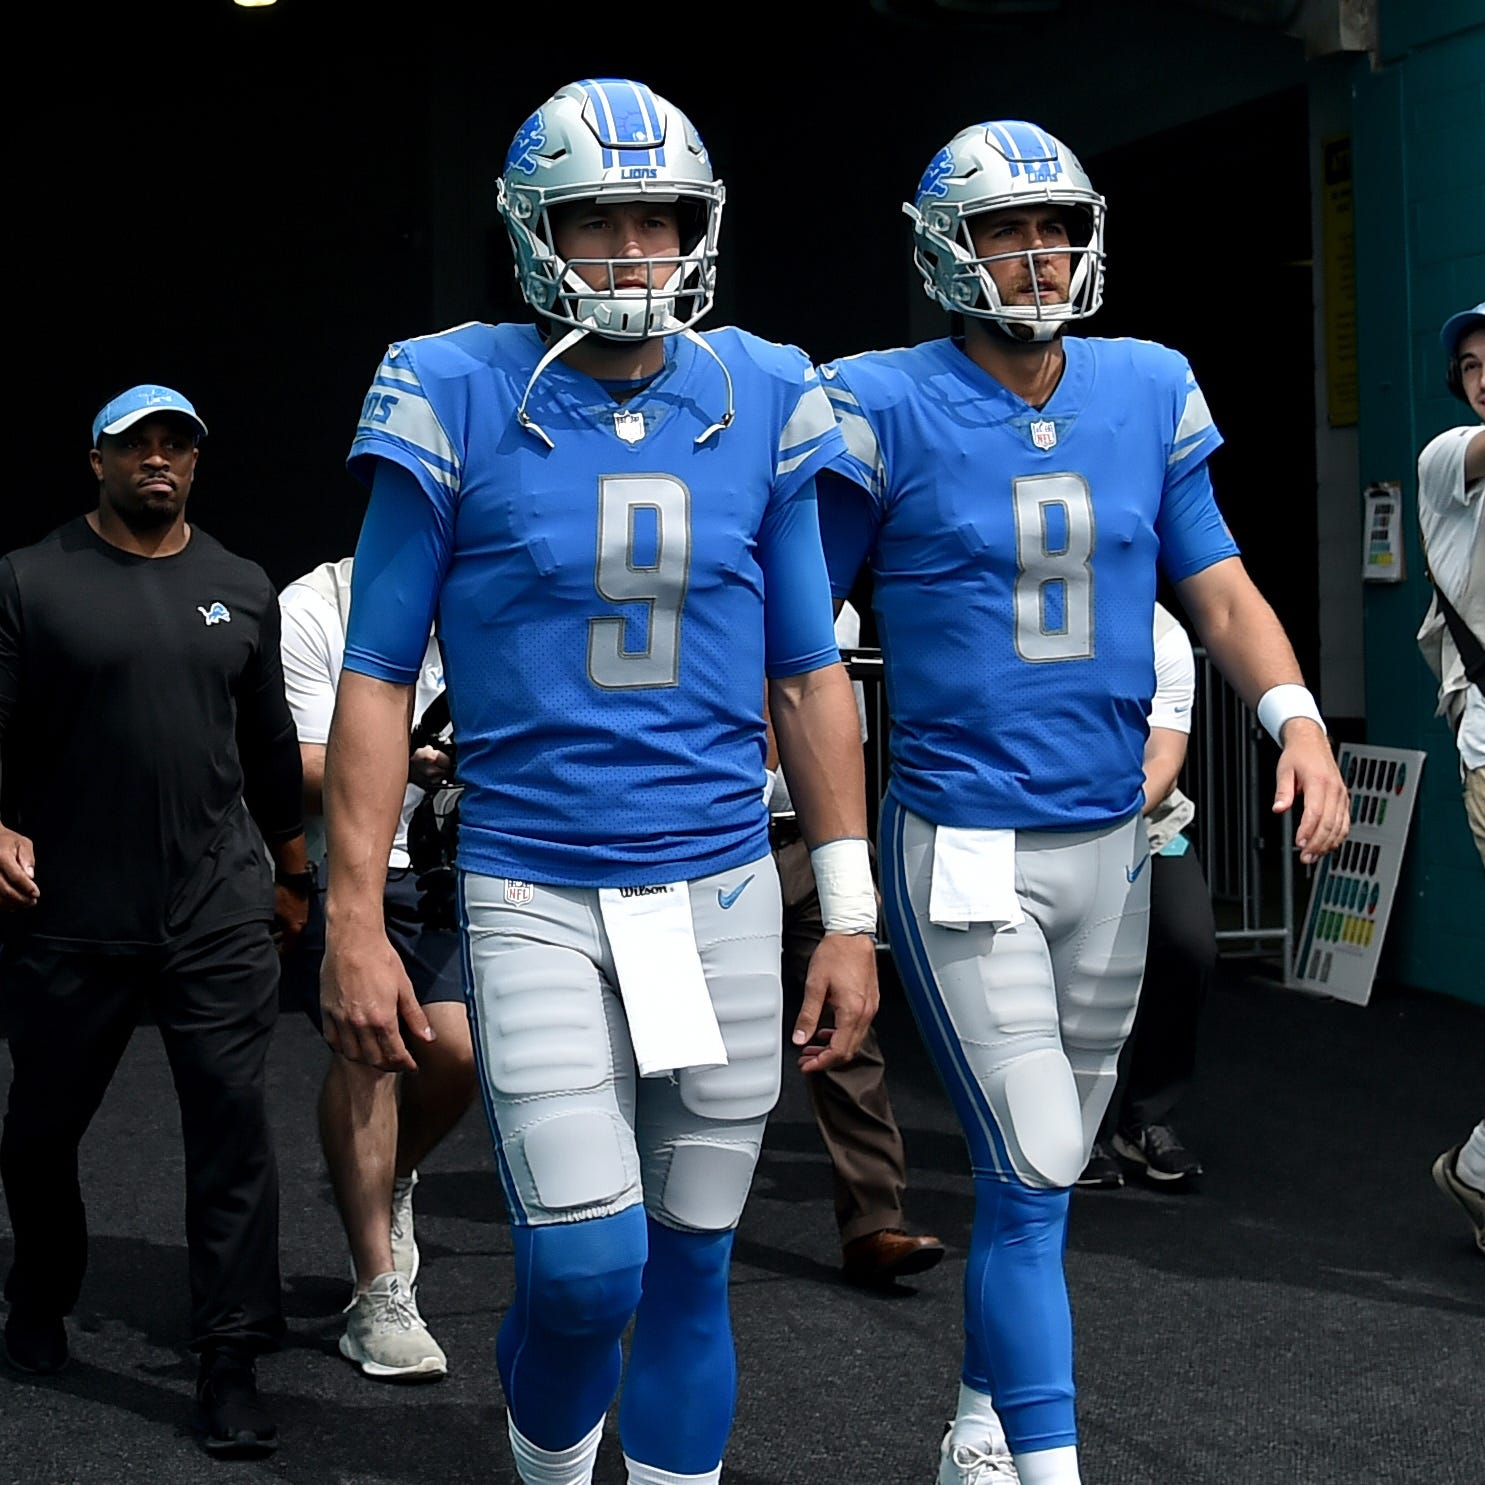 Lions quarterbacks Matthew Stafford (left) and Matt Cassel both take the field prior to a game against the Miami Dolphins at Hard Rock Stadium on Sunday, Oct. 21, 2018, in Miami Gardens, Fla.